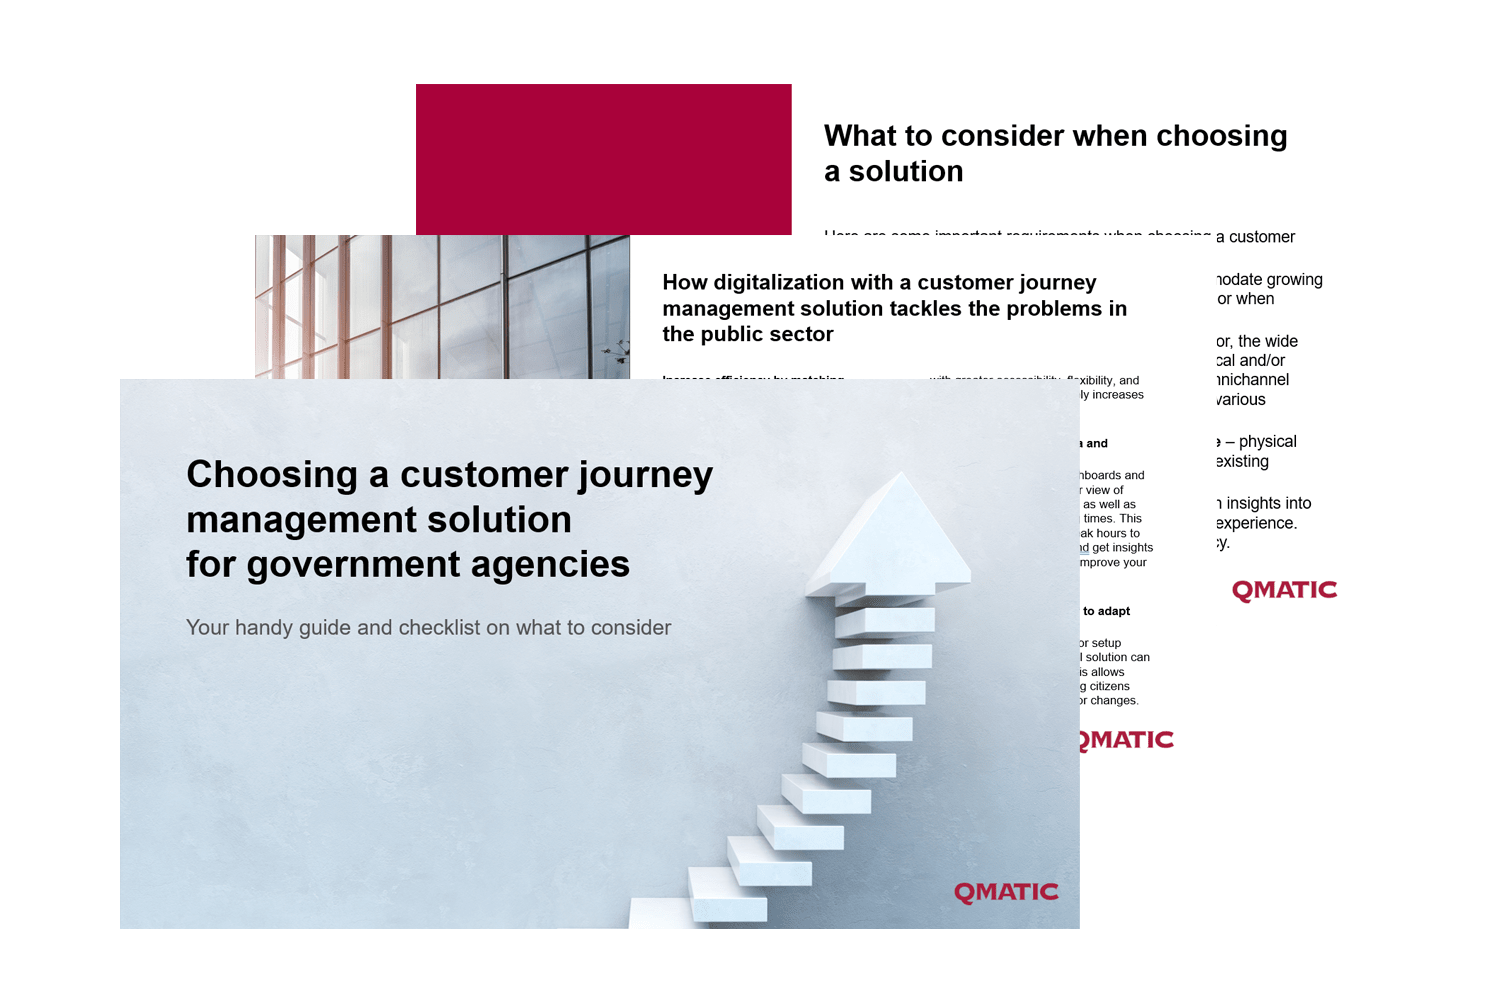 Choosing-CJM-solution-guide-for-public-sector-preview